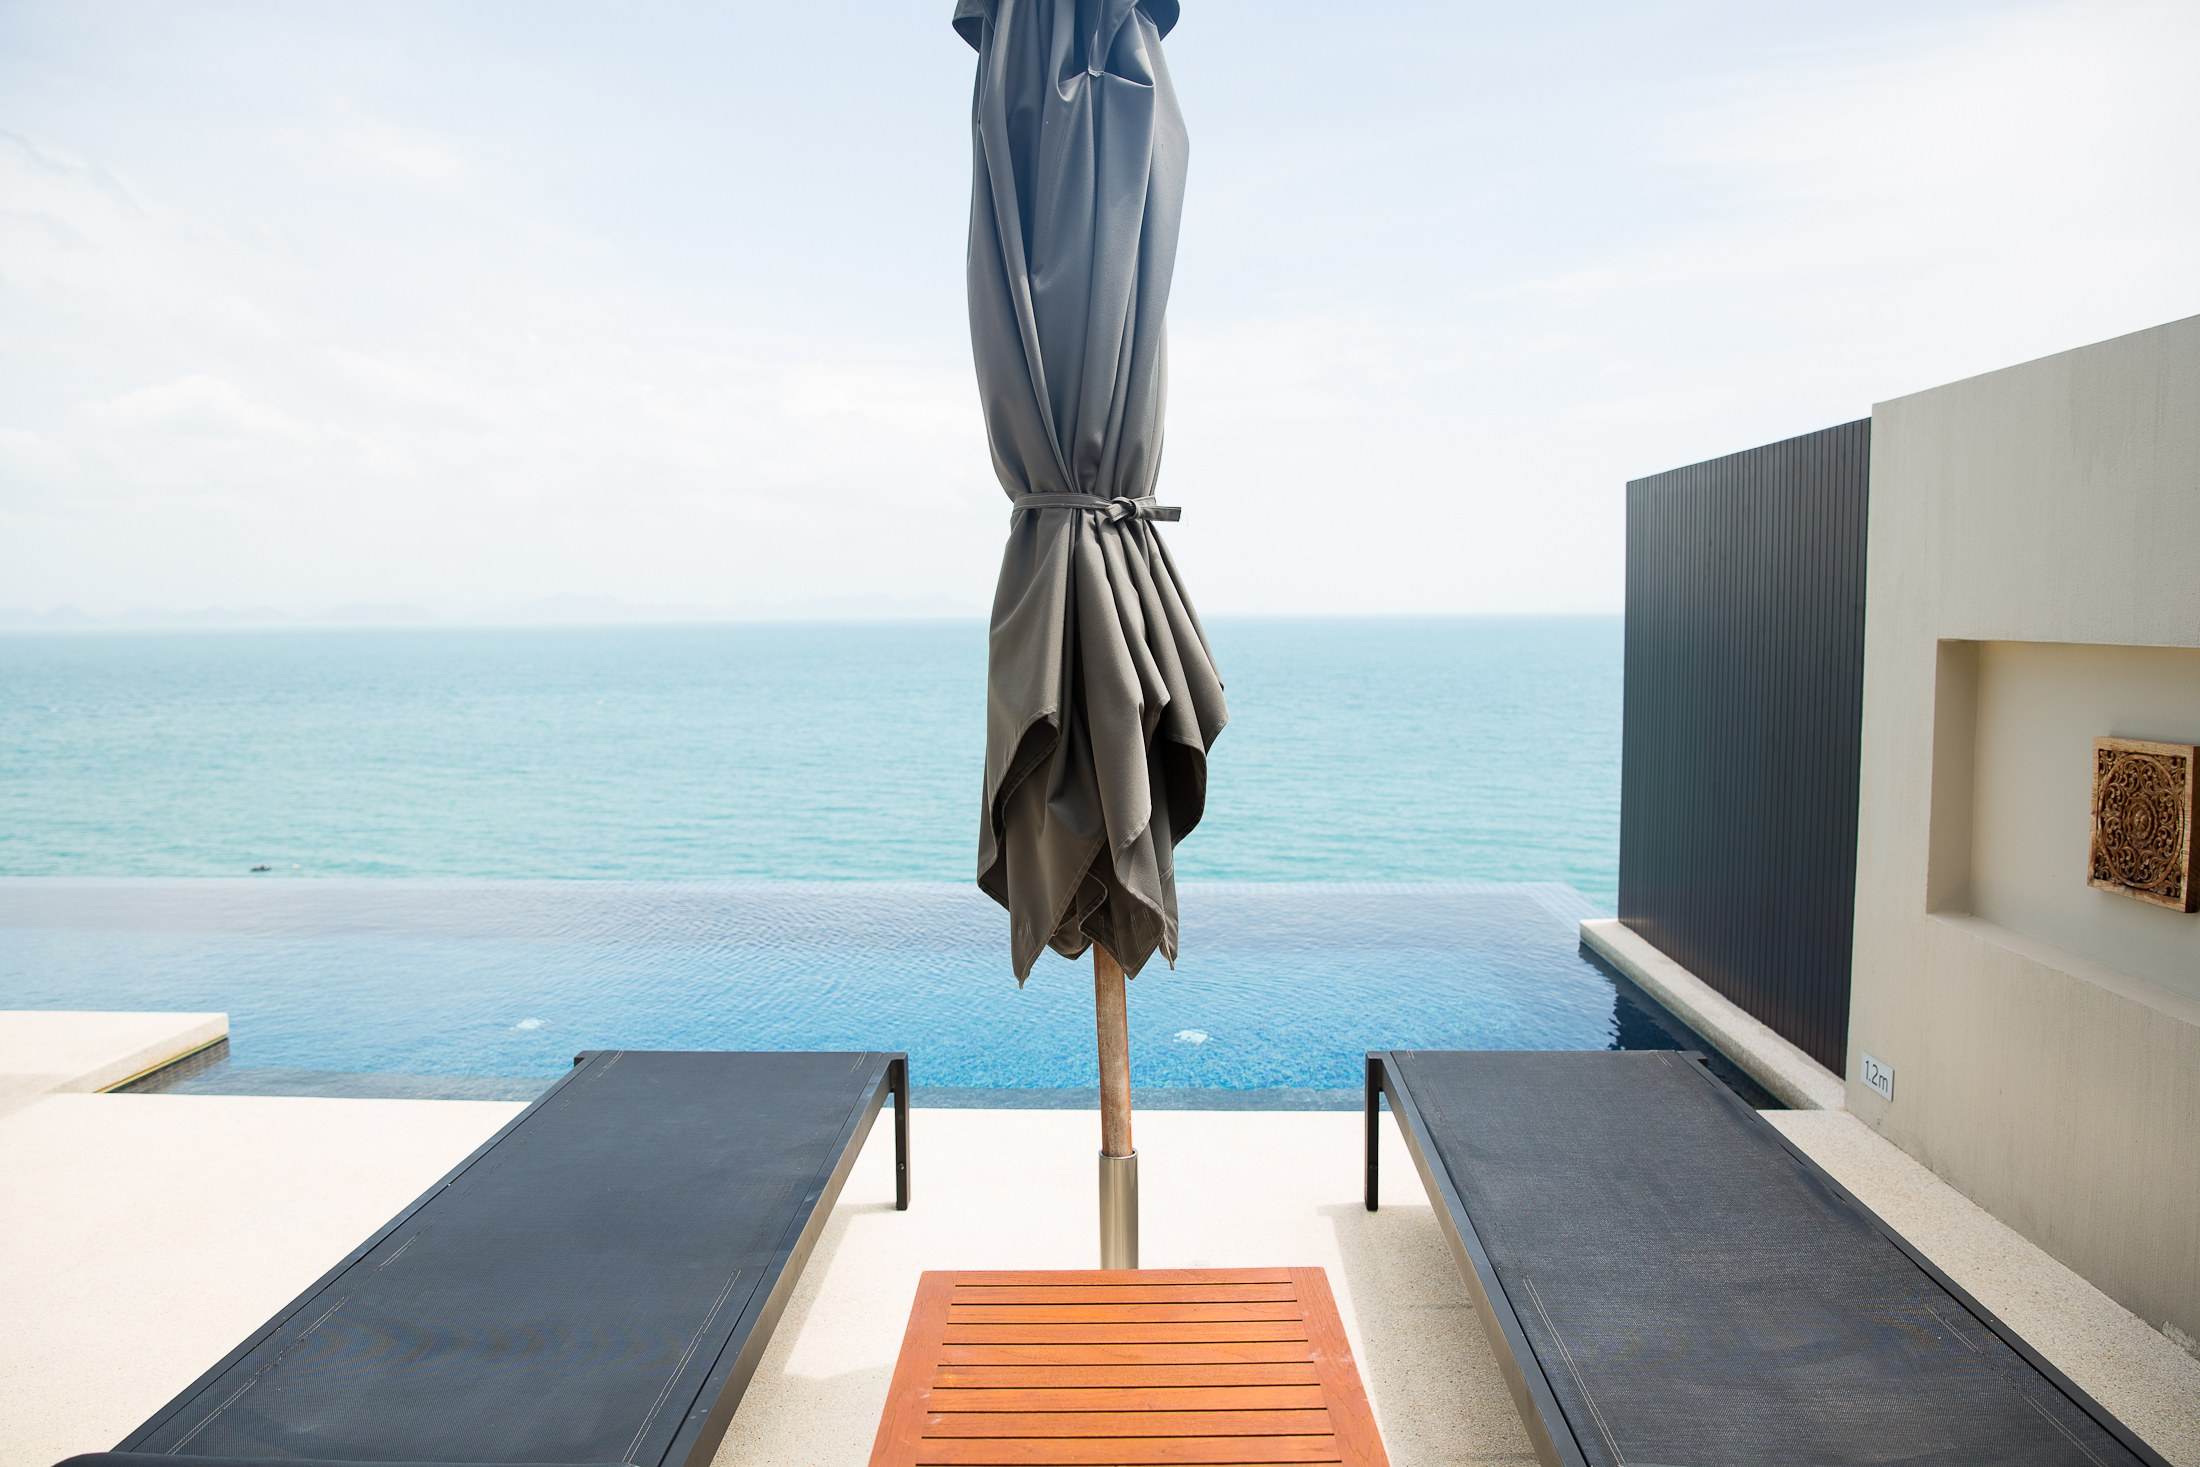 thailand conrad koh samui ko samui hotel villa suite ocean front view beach private infinity pool sunst thai food cocktail pool island snorkle snorkling fresh squeeze juice guava watermelon apple dragonfruit island paradise sher she goes shershegoes.com